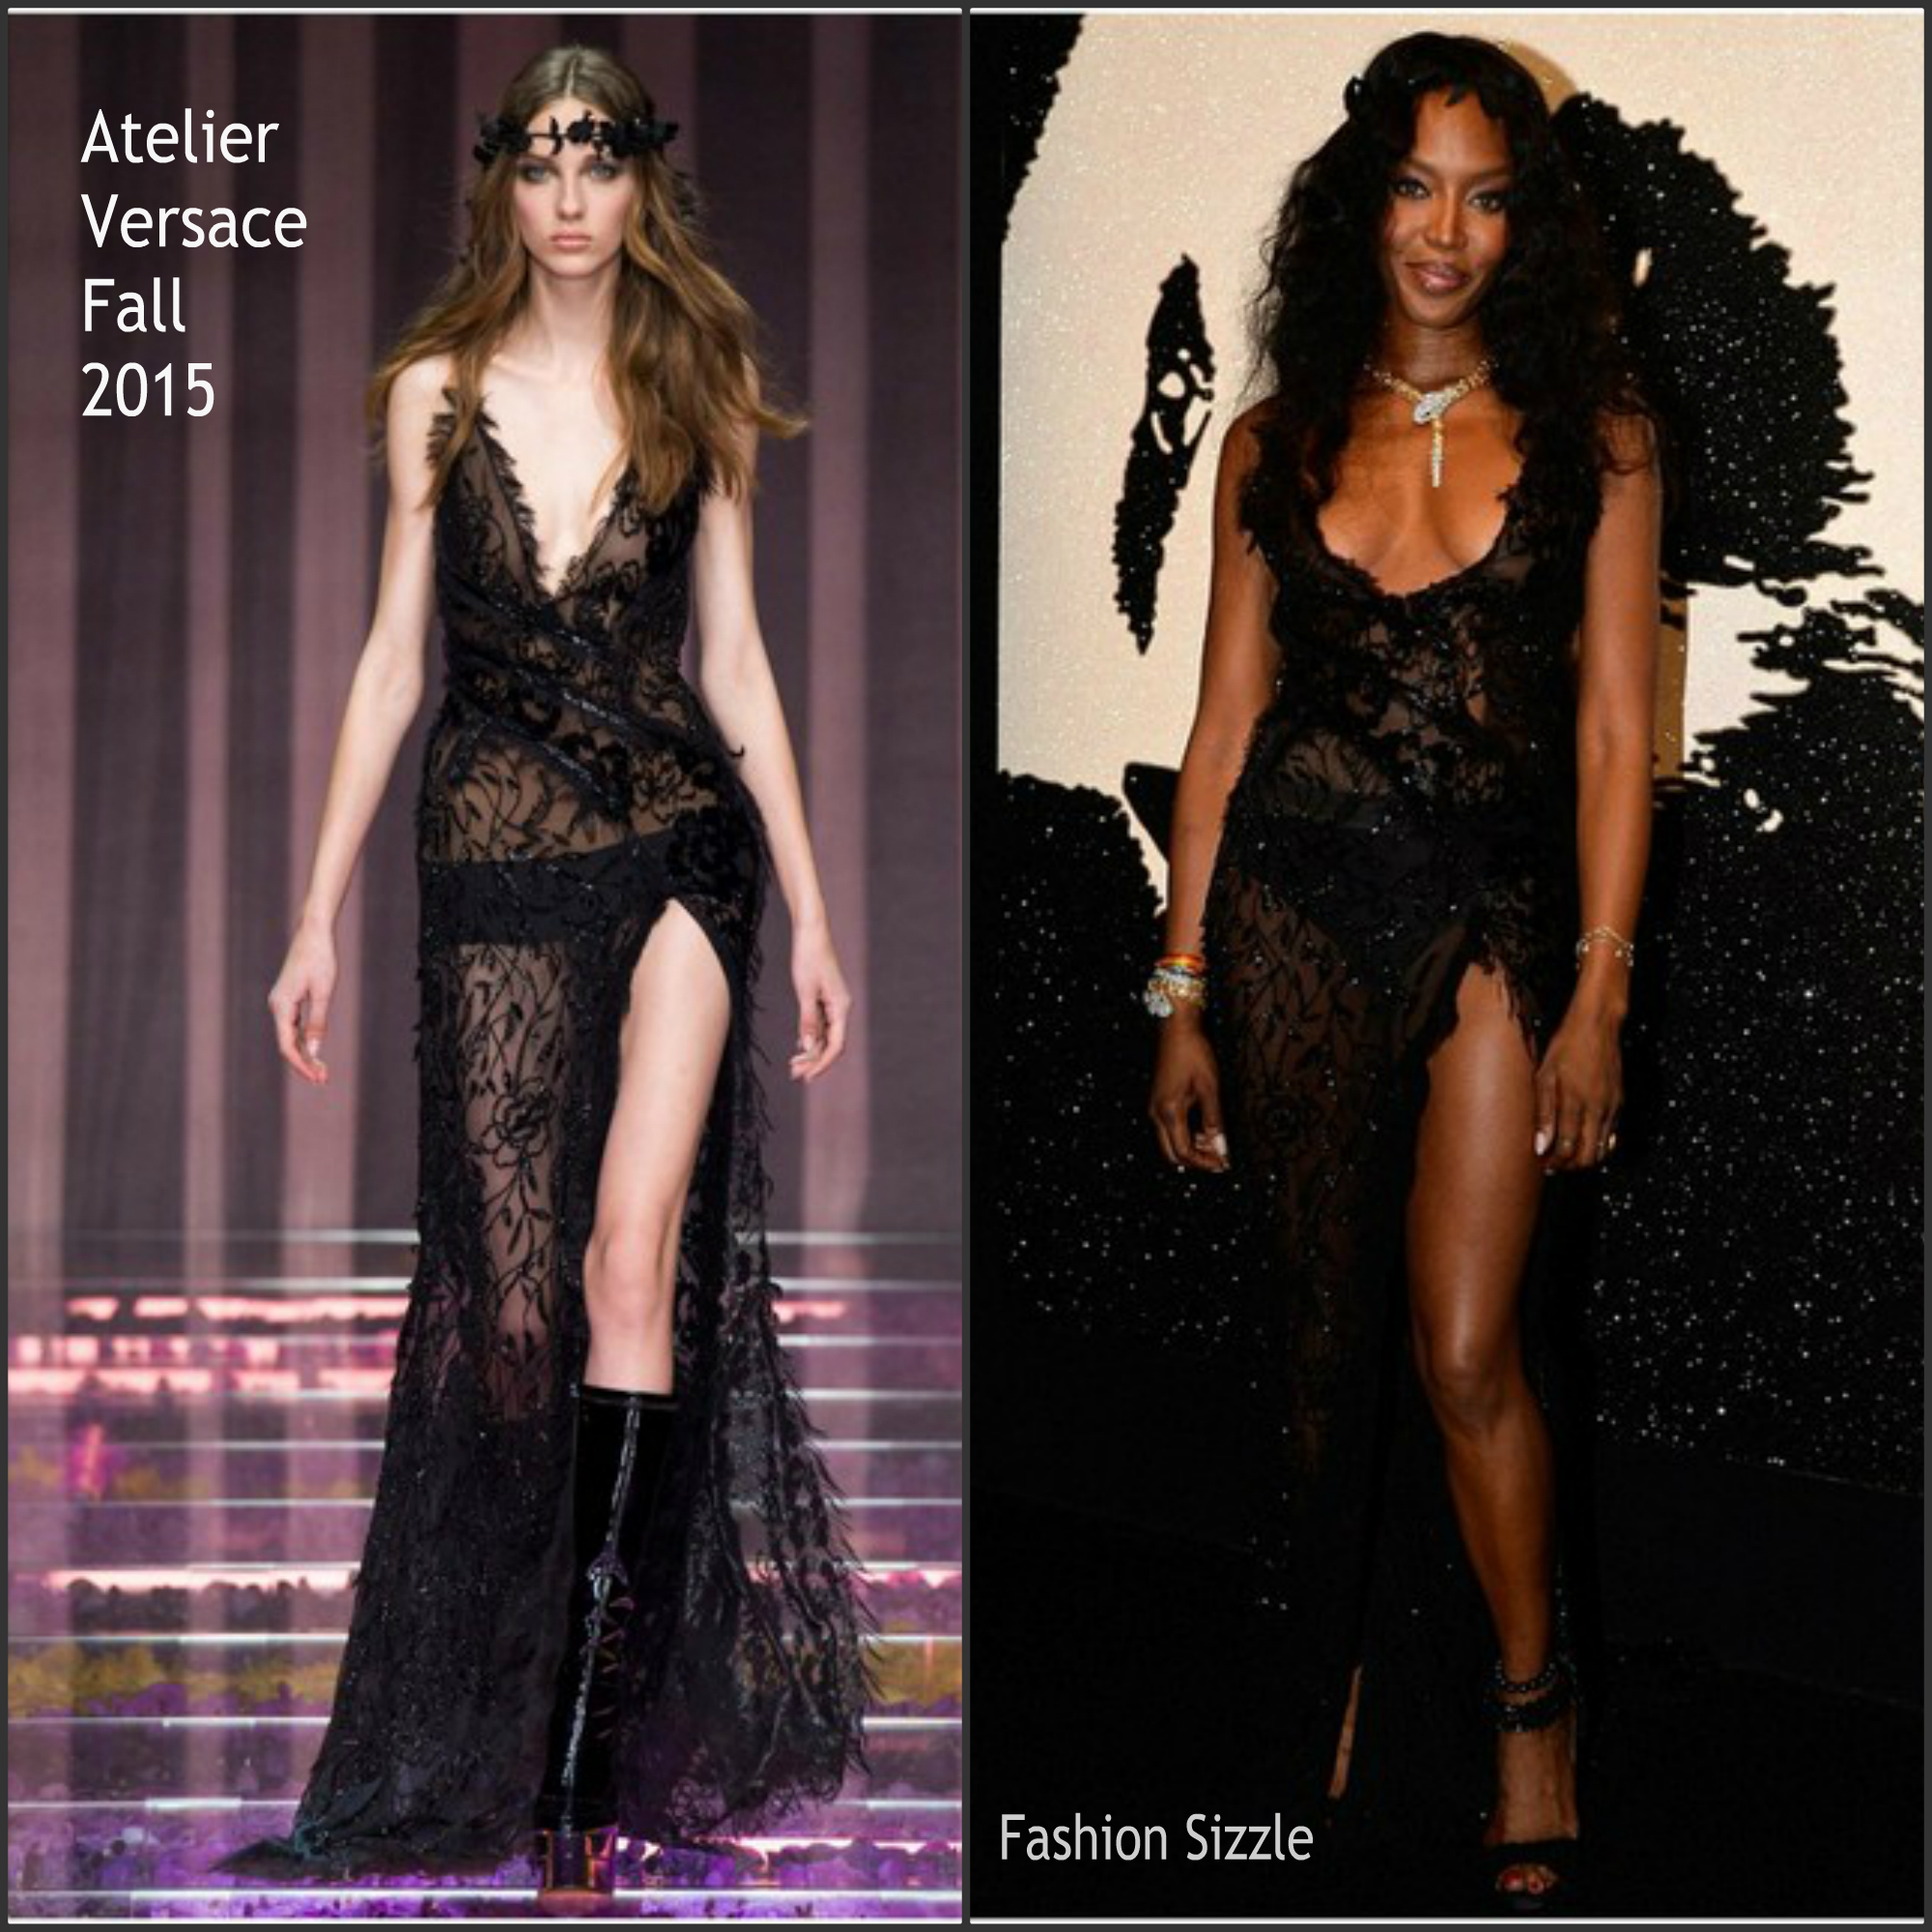 naomi-campbell-in-atelier-versace-the-leonardo-dicaprio-foundation-2nd-annual-saint-tropez-gala